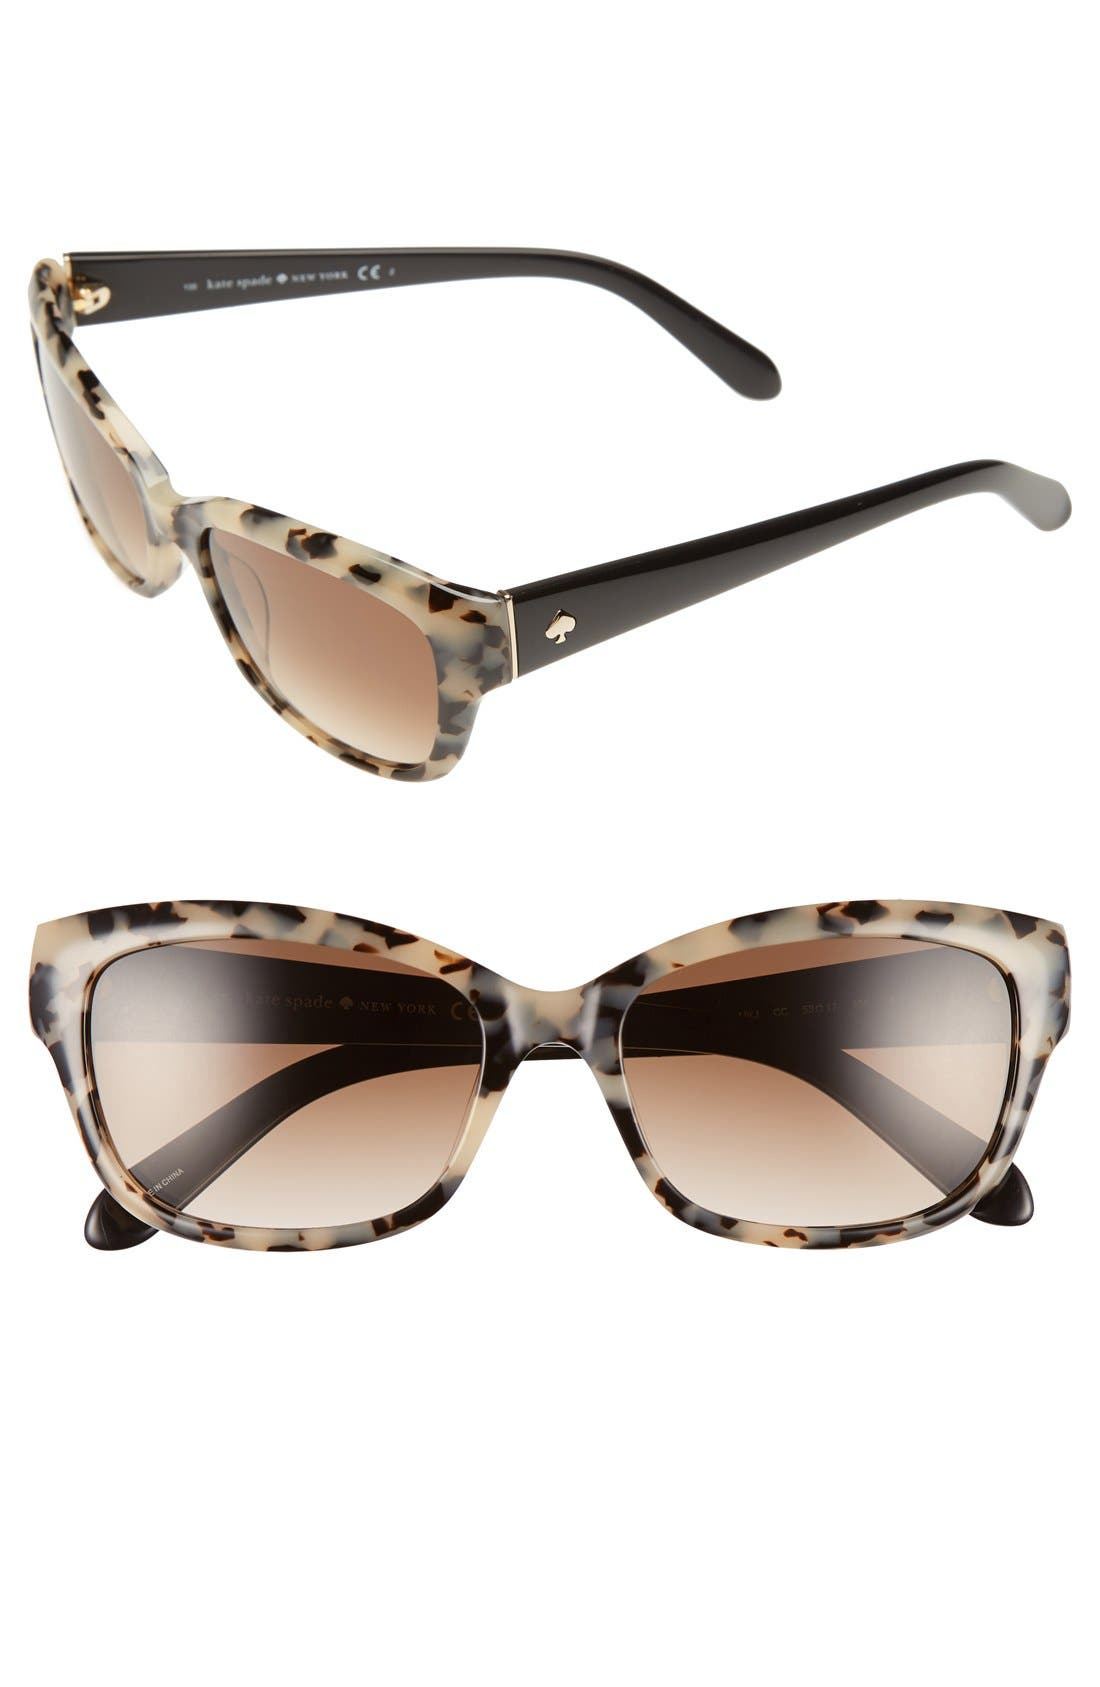 Main Image - kate spade 'johanna' 53mm retro sunglasses